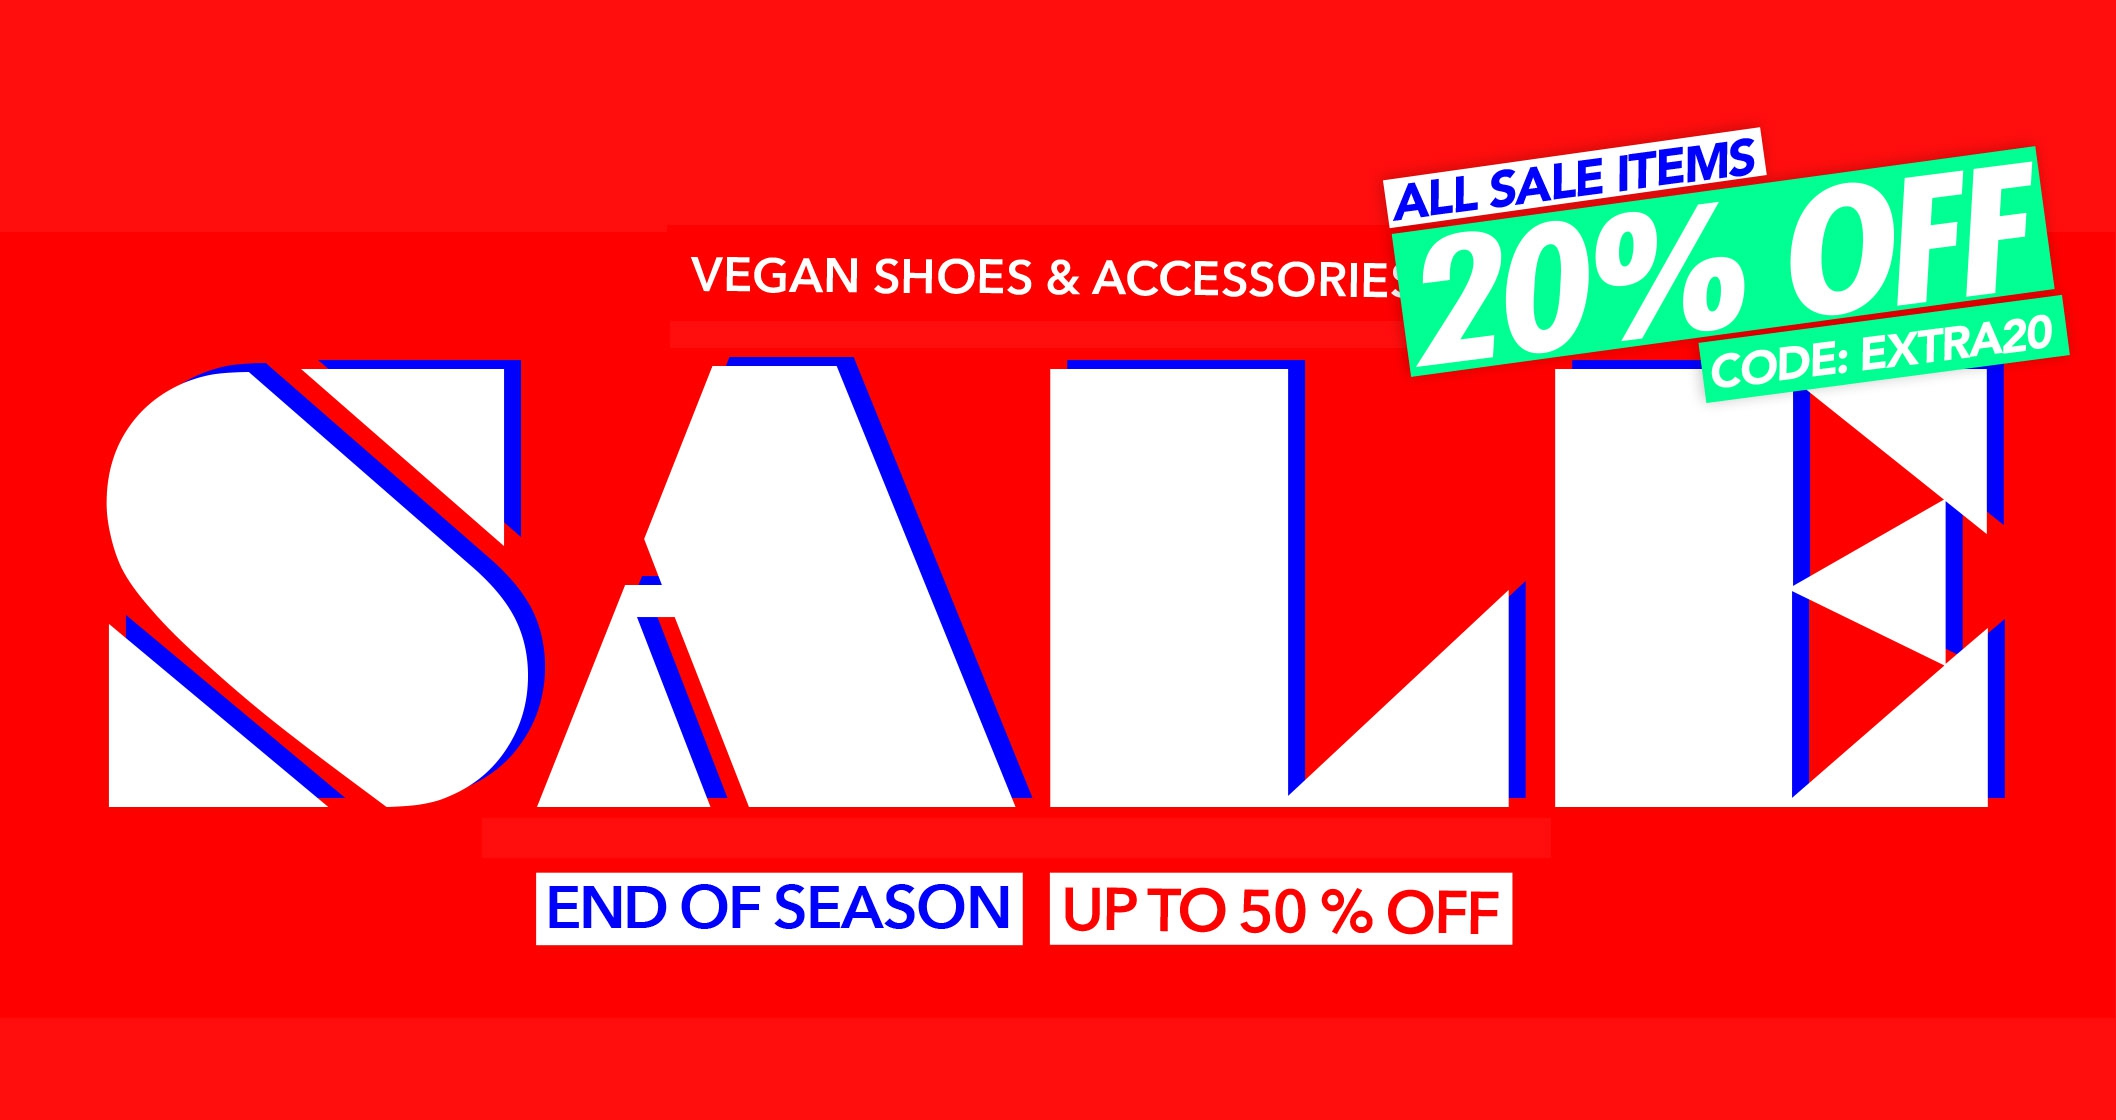 END OF SEASON   Vegan shoes on sale   Up to 50 % OFF vegan shoes and accessories